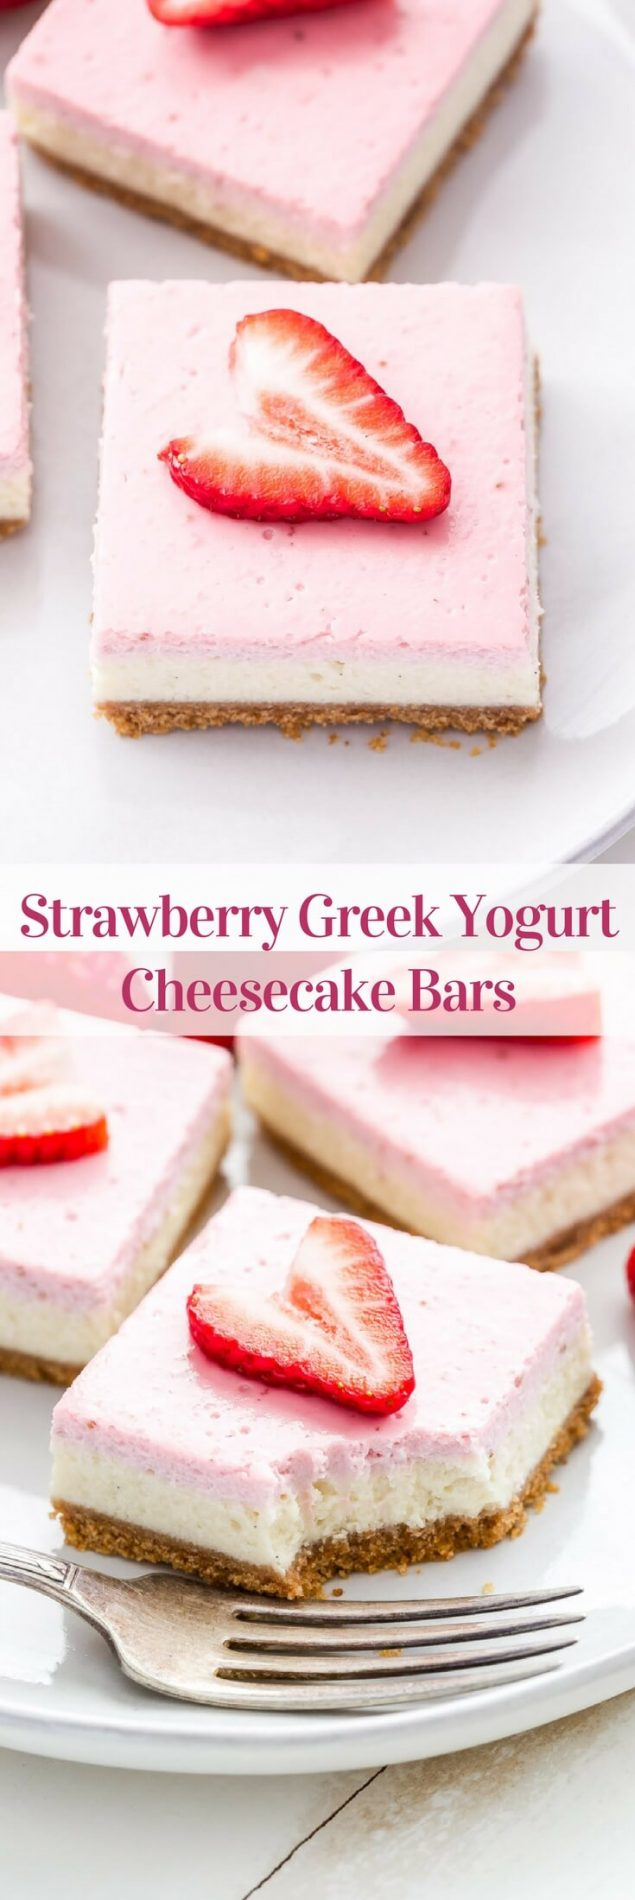 Strawberry Greek Yogurt Cheesecake Bars are perfect for spring! You'll never suspect that these creamy, rich, layered bars were lightened up! #cheesecake #greekyogurt #strawberry #dessert #easter